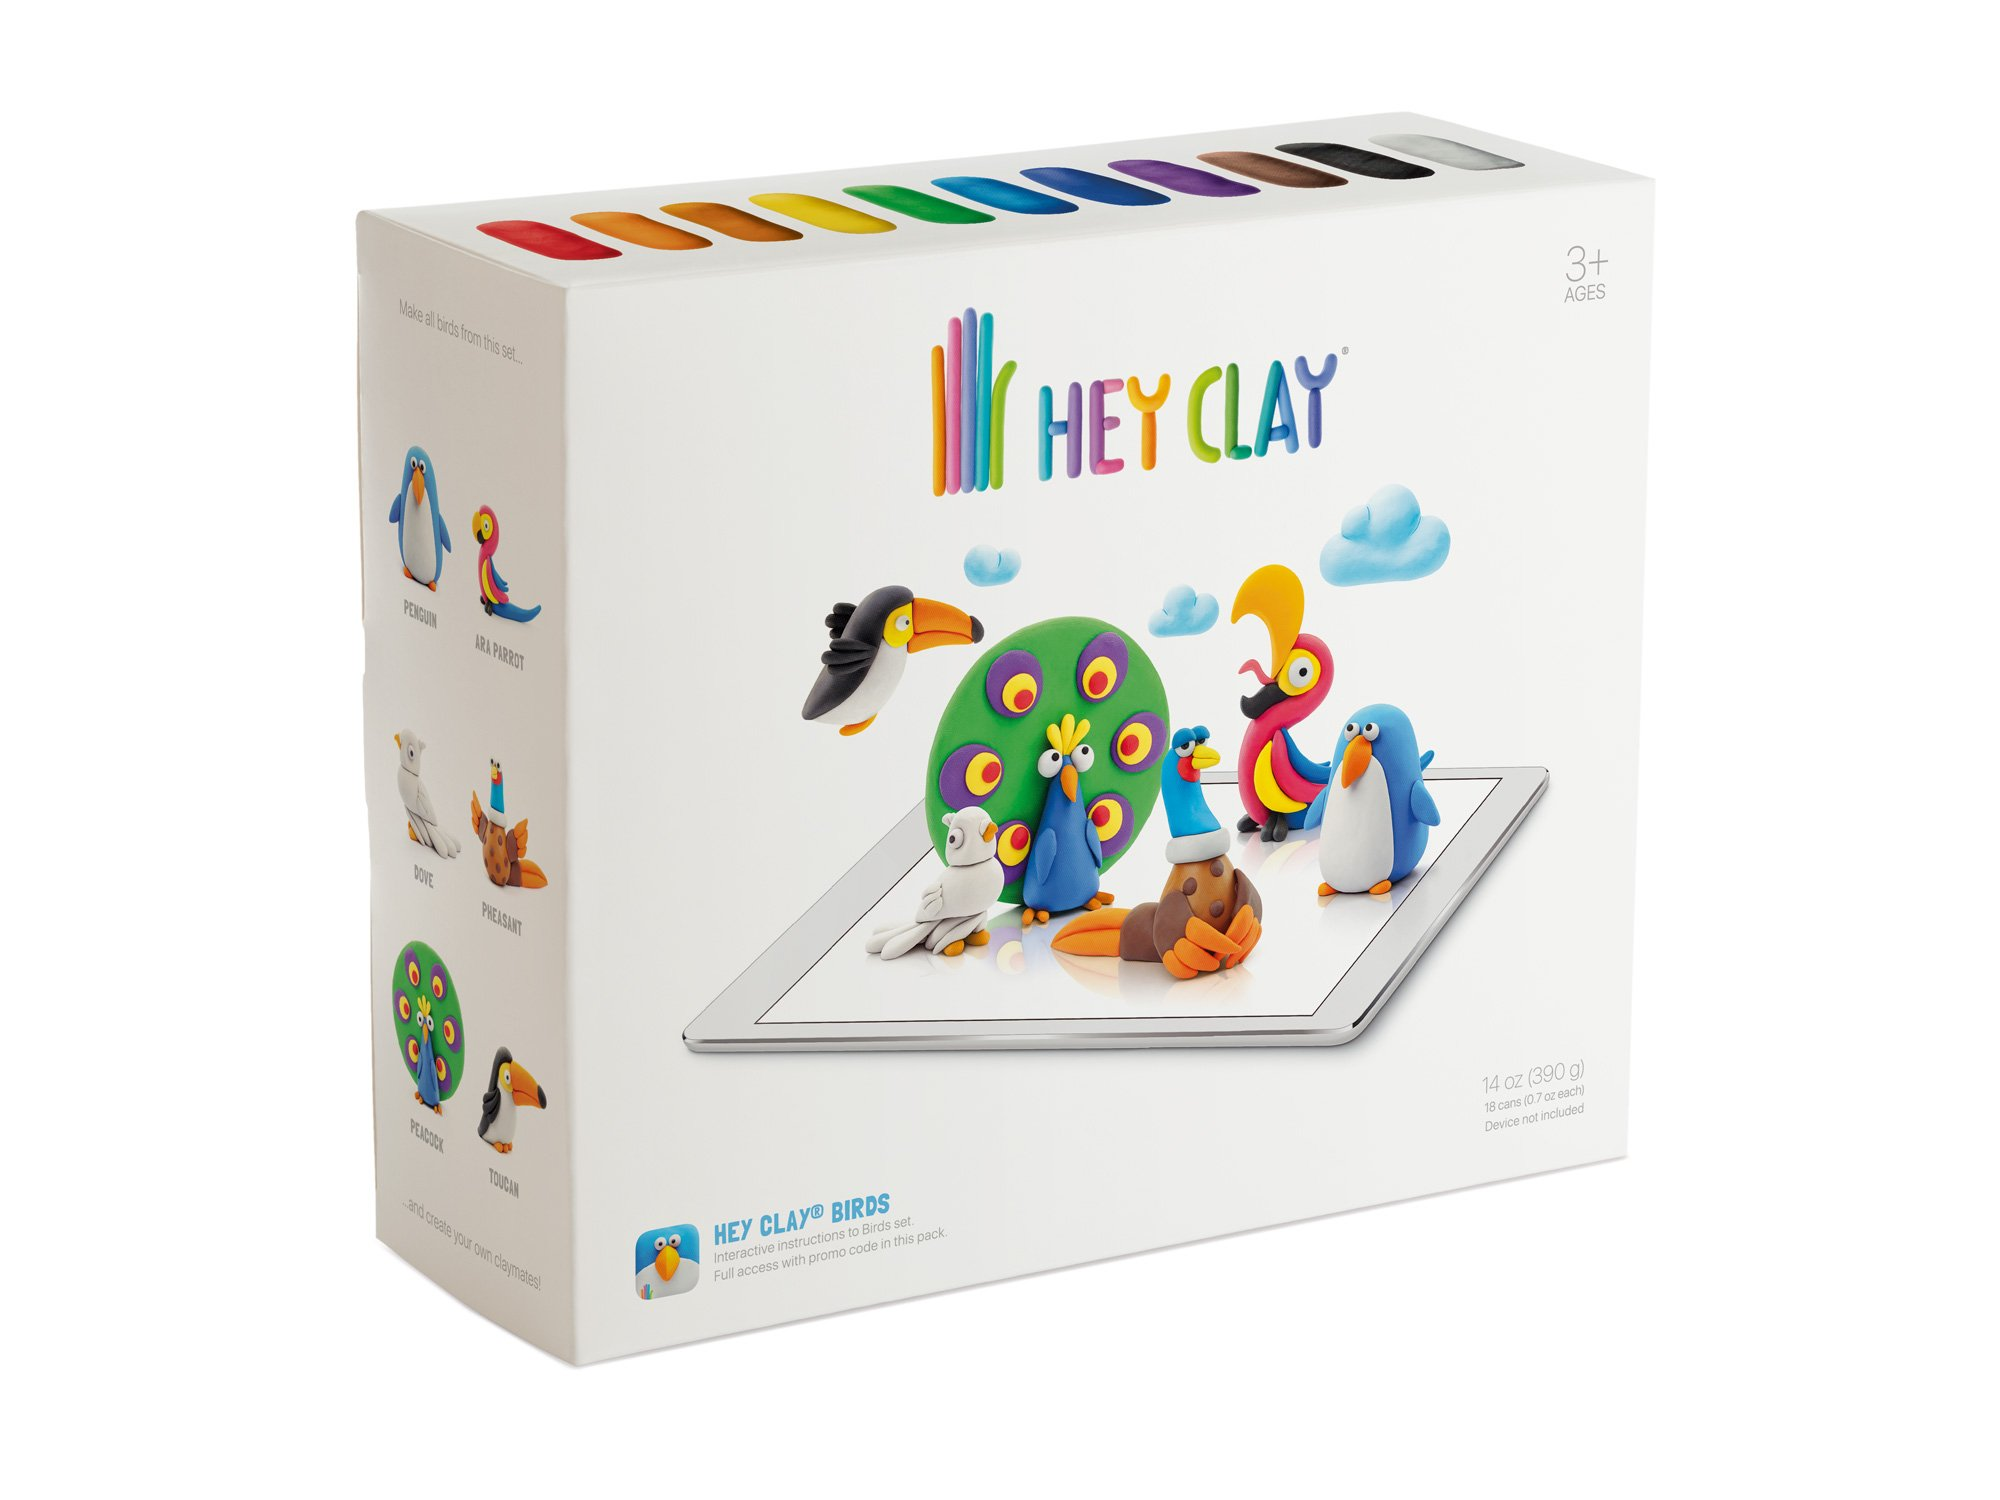 Hey Clay Birds - Colorful Kids Modeling Air-Dry Clay, 18 Cans with Fun Interactive App